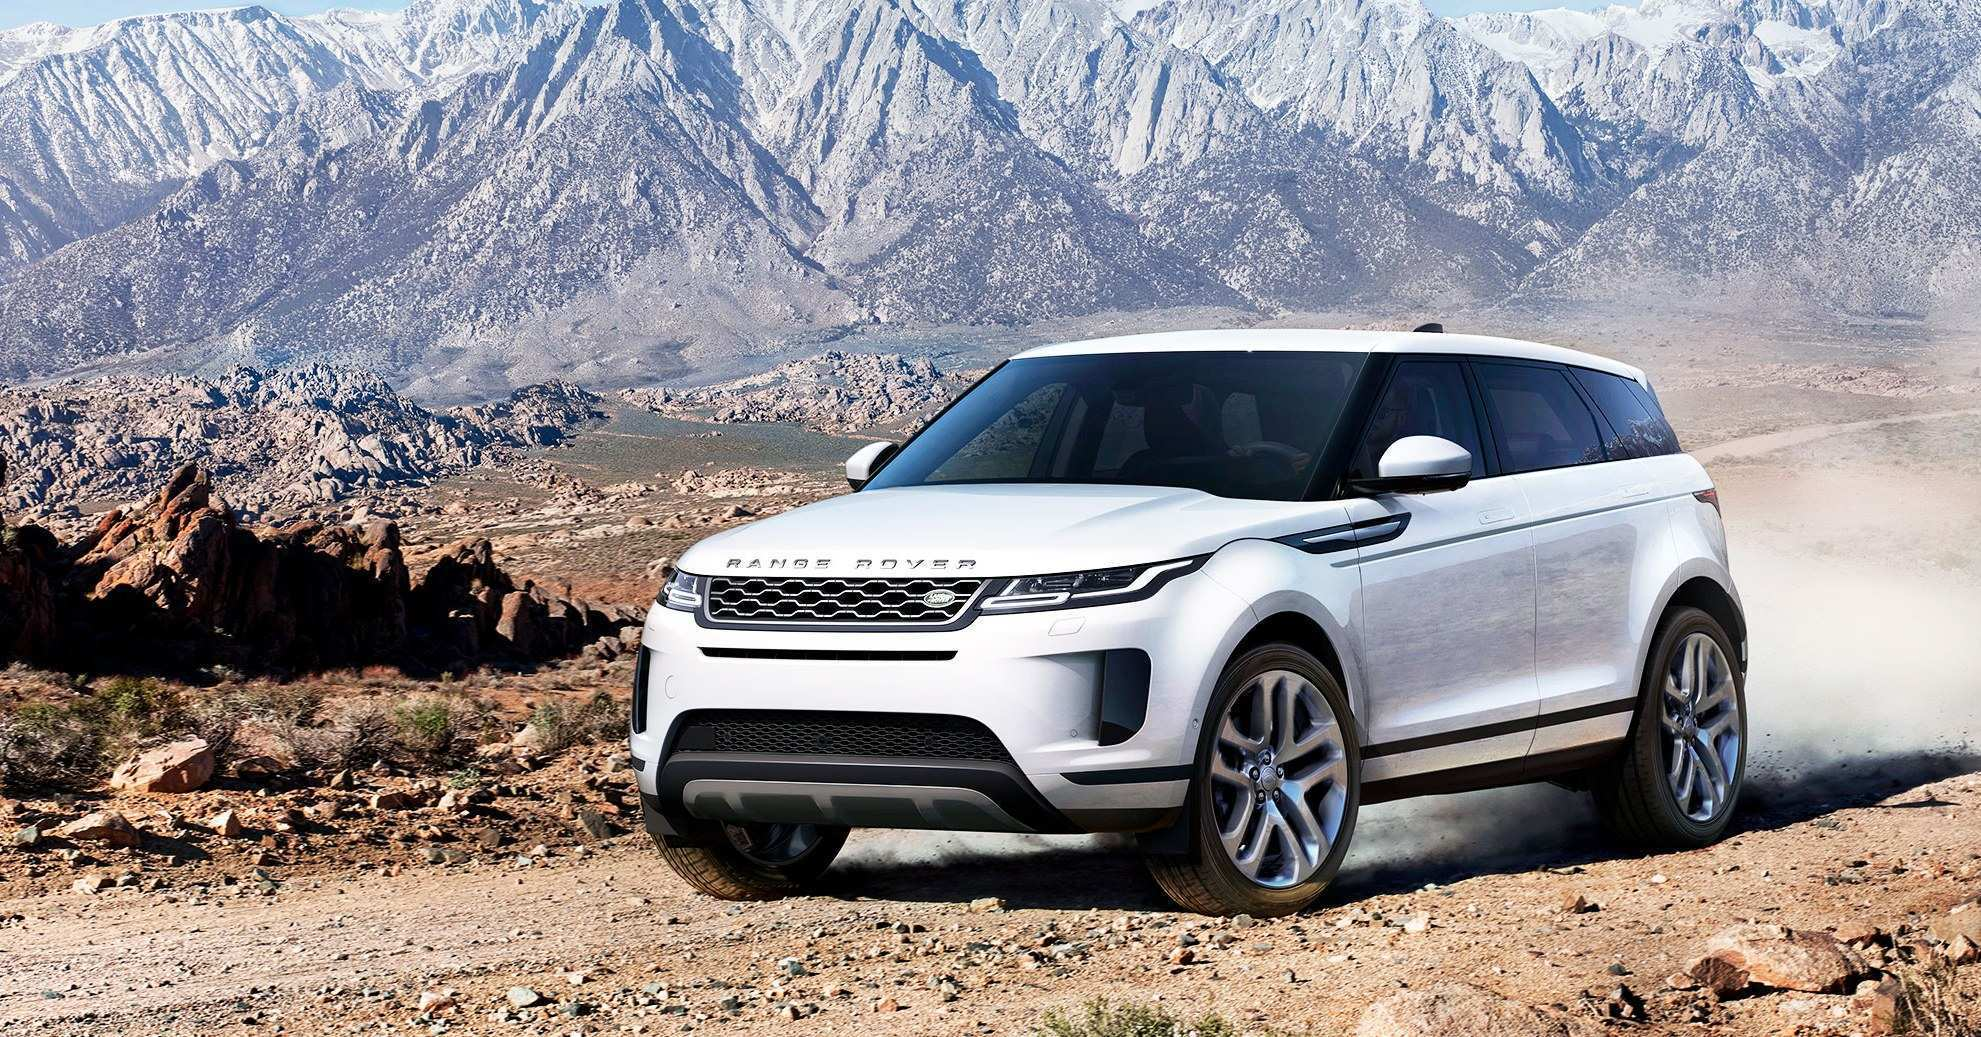 86 All New Jaguar Land Rover 2020 Vision Prices with Jaguar Land Rover 2020 Vision